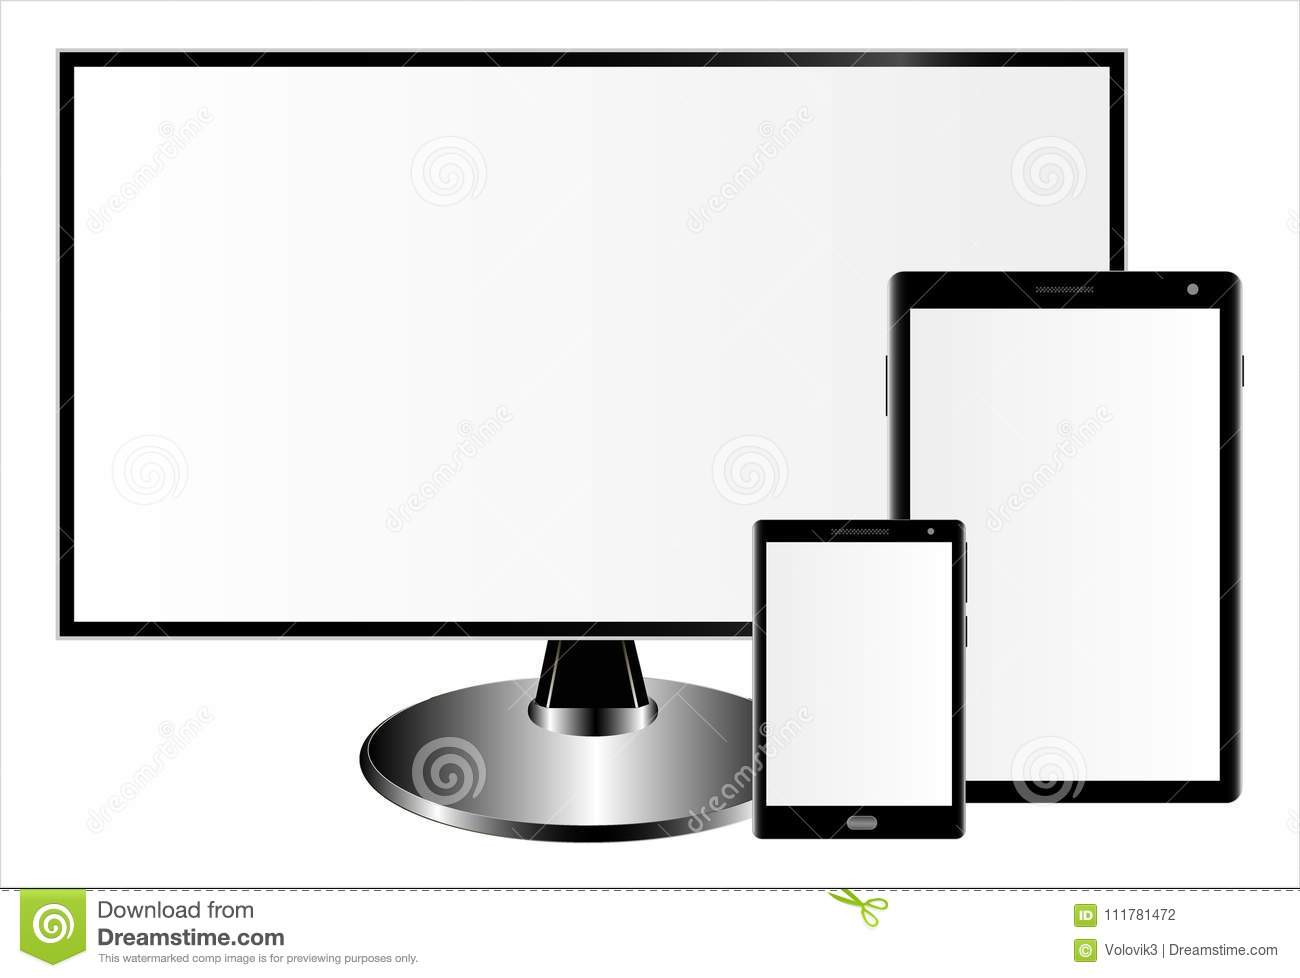 Mockups of a monitor, a tablet computer and a smartphone on a white background. Can be used as a template for your design.